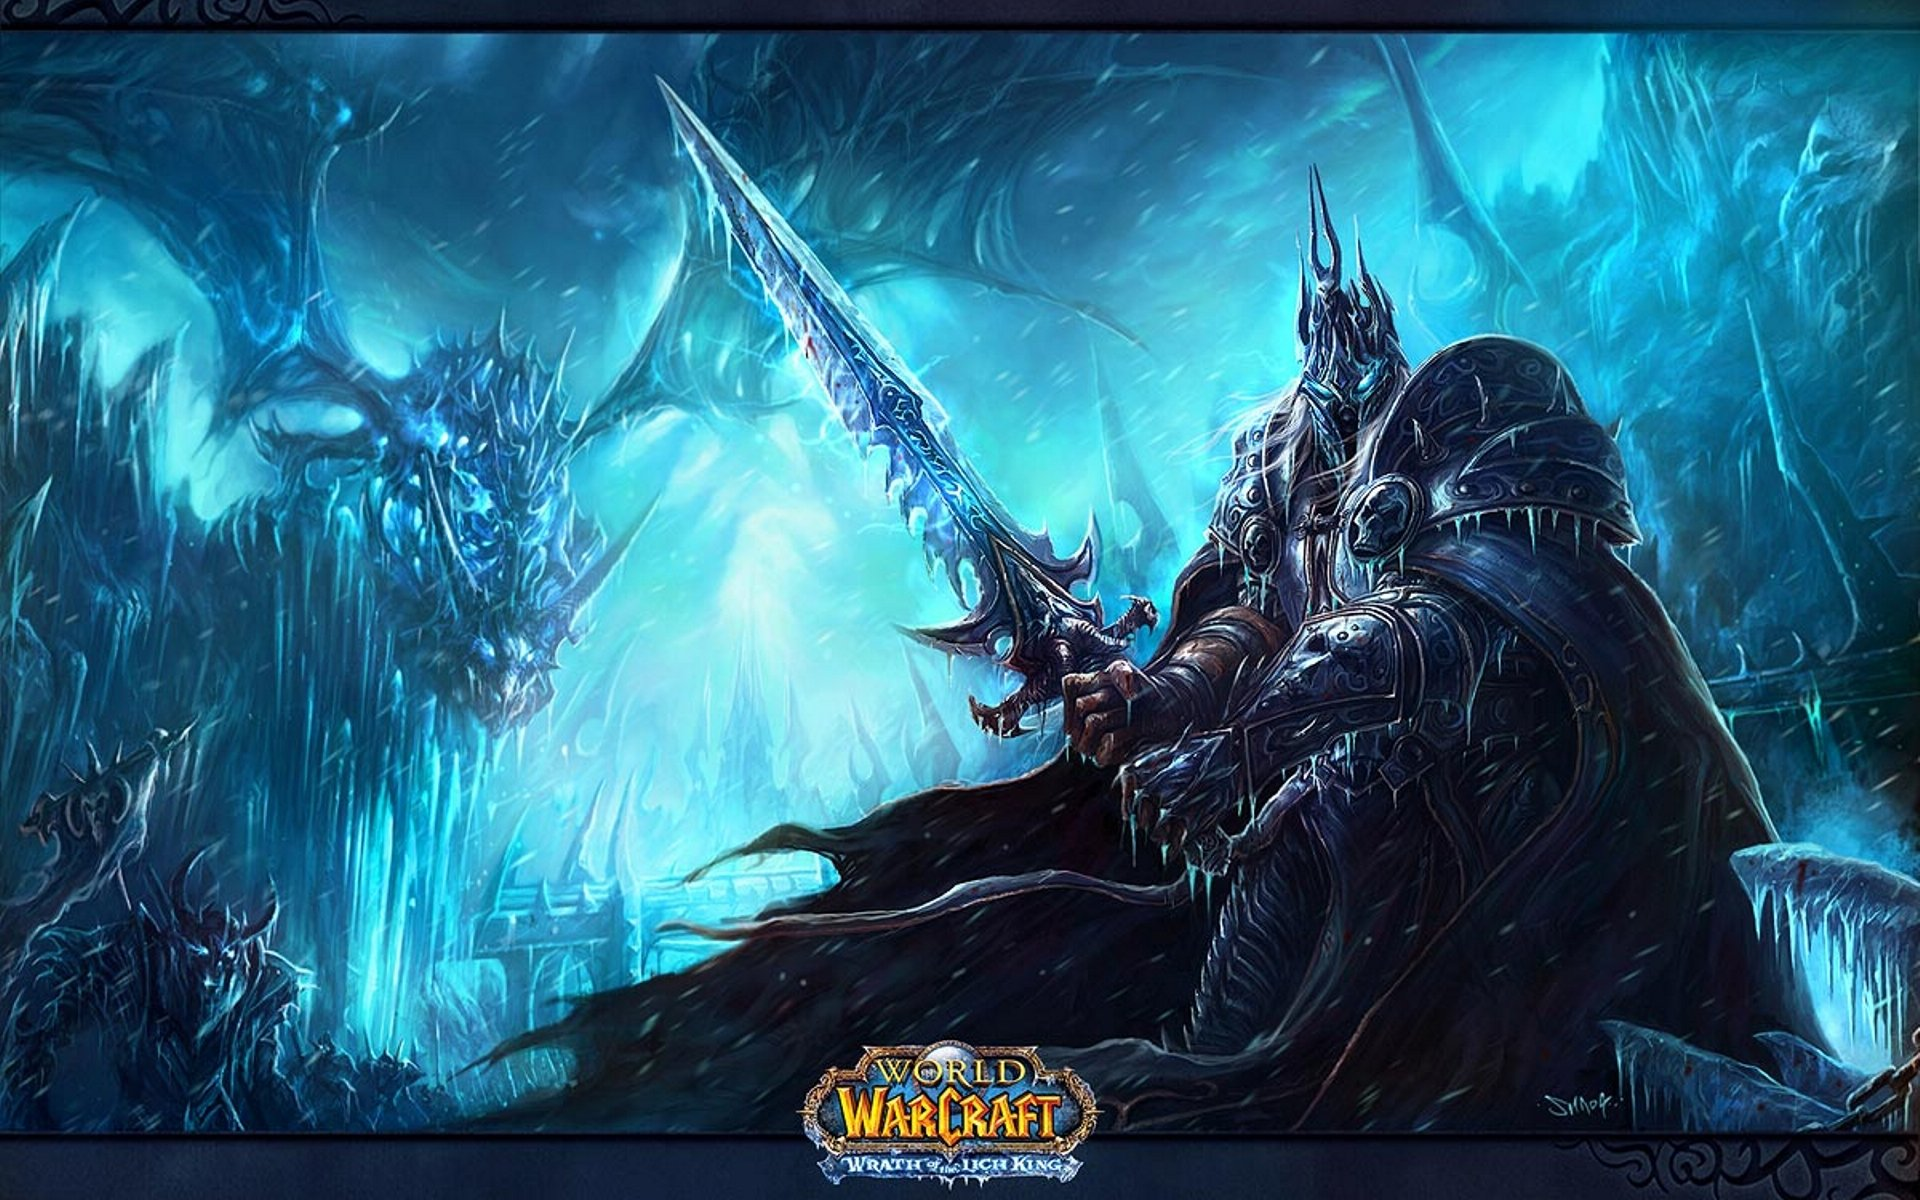 World Of Warcraft wallpaper | 1920x1200 | #68033